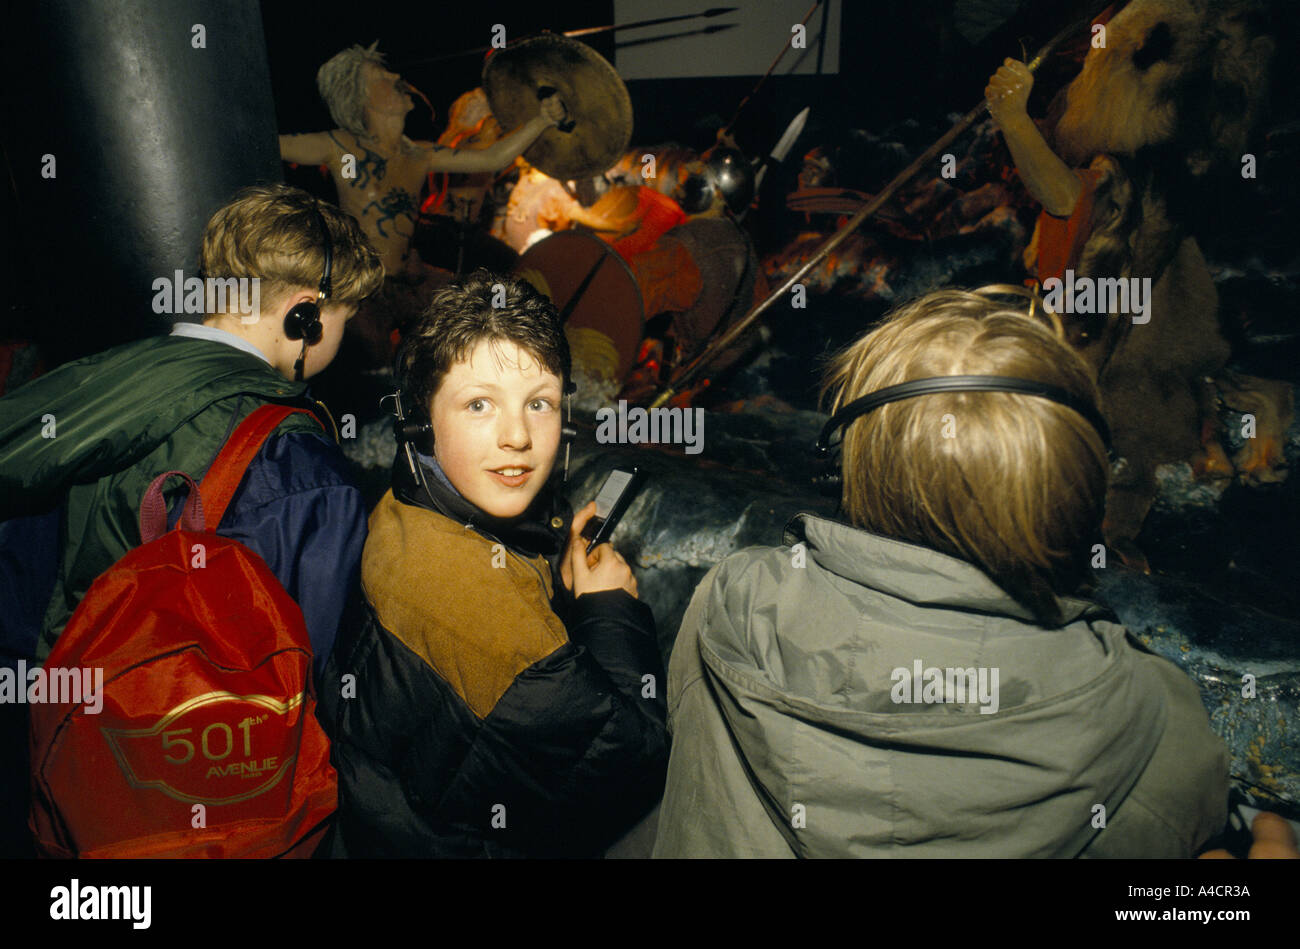 CHILDREN WITH HEADPHONES ENJOYING DISPLAY AT WHITE CLIFFS EXPERIENCE DOVER, ENGLAND, MARCH 1994 - Stock Image